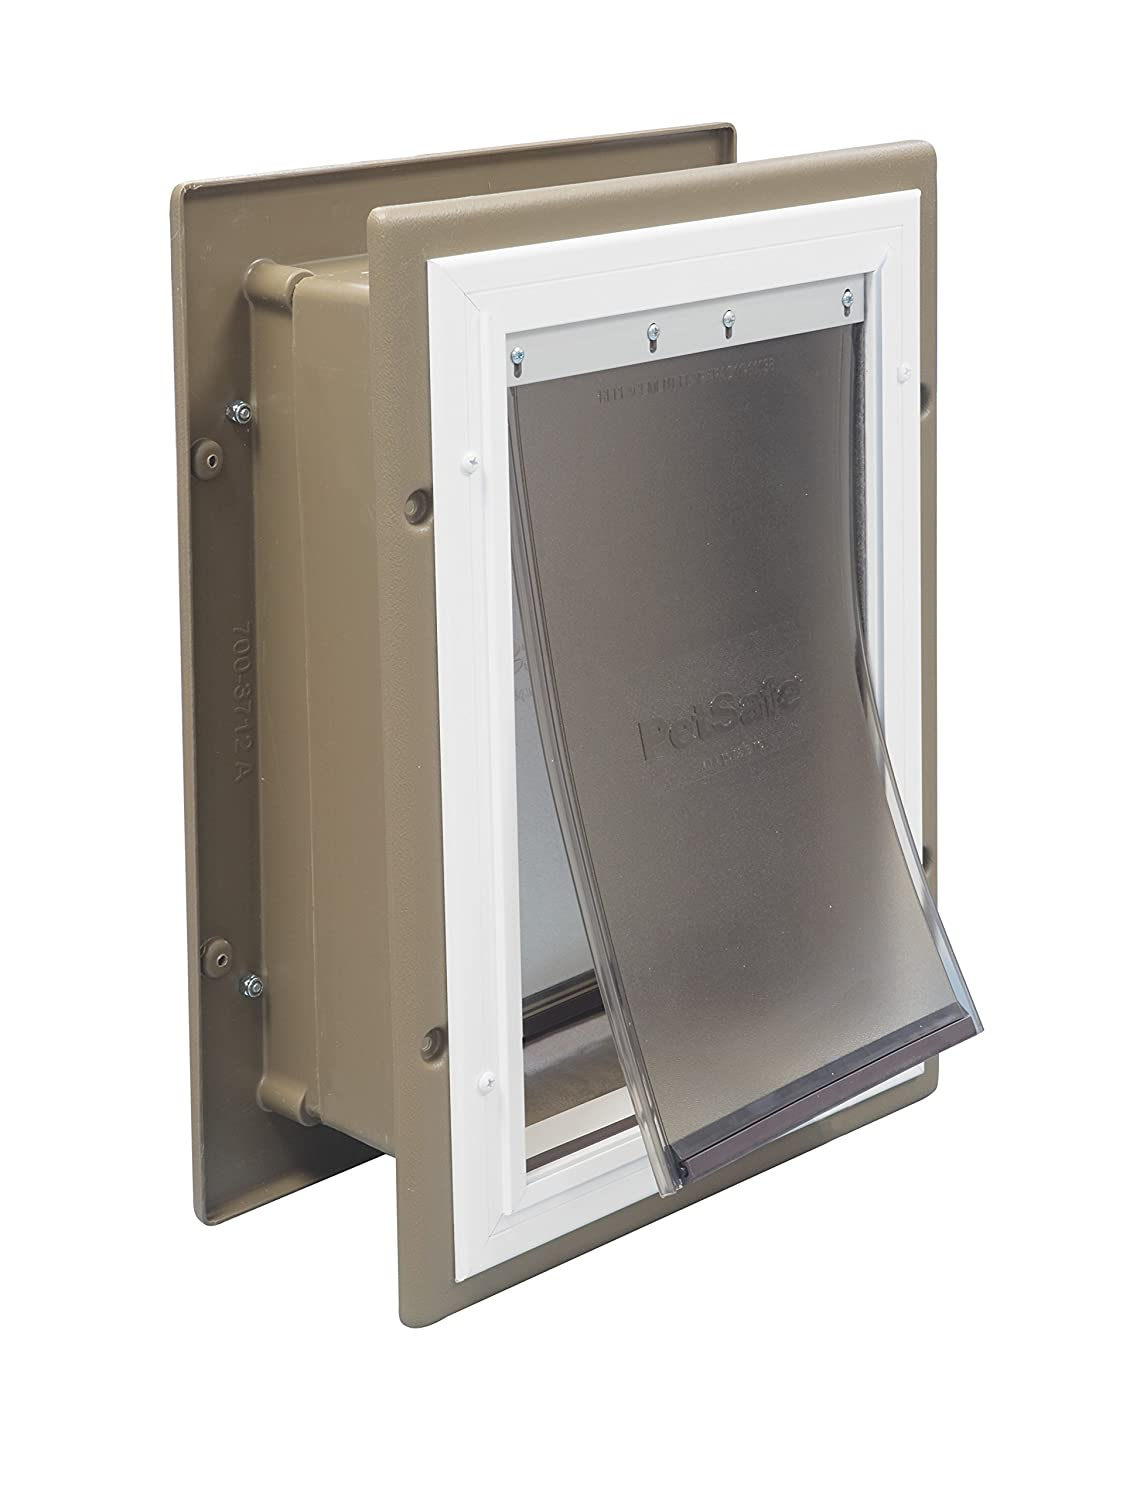 PetSafe Wall Entry Pet Door with Telescoping Tunnel Available in Small Pet Door for Dogs and Cats Medium and Large